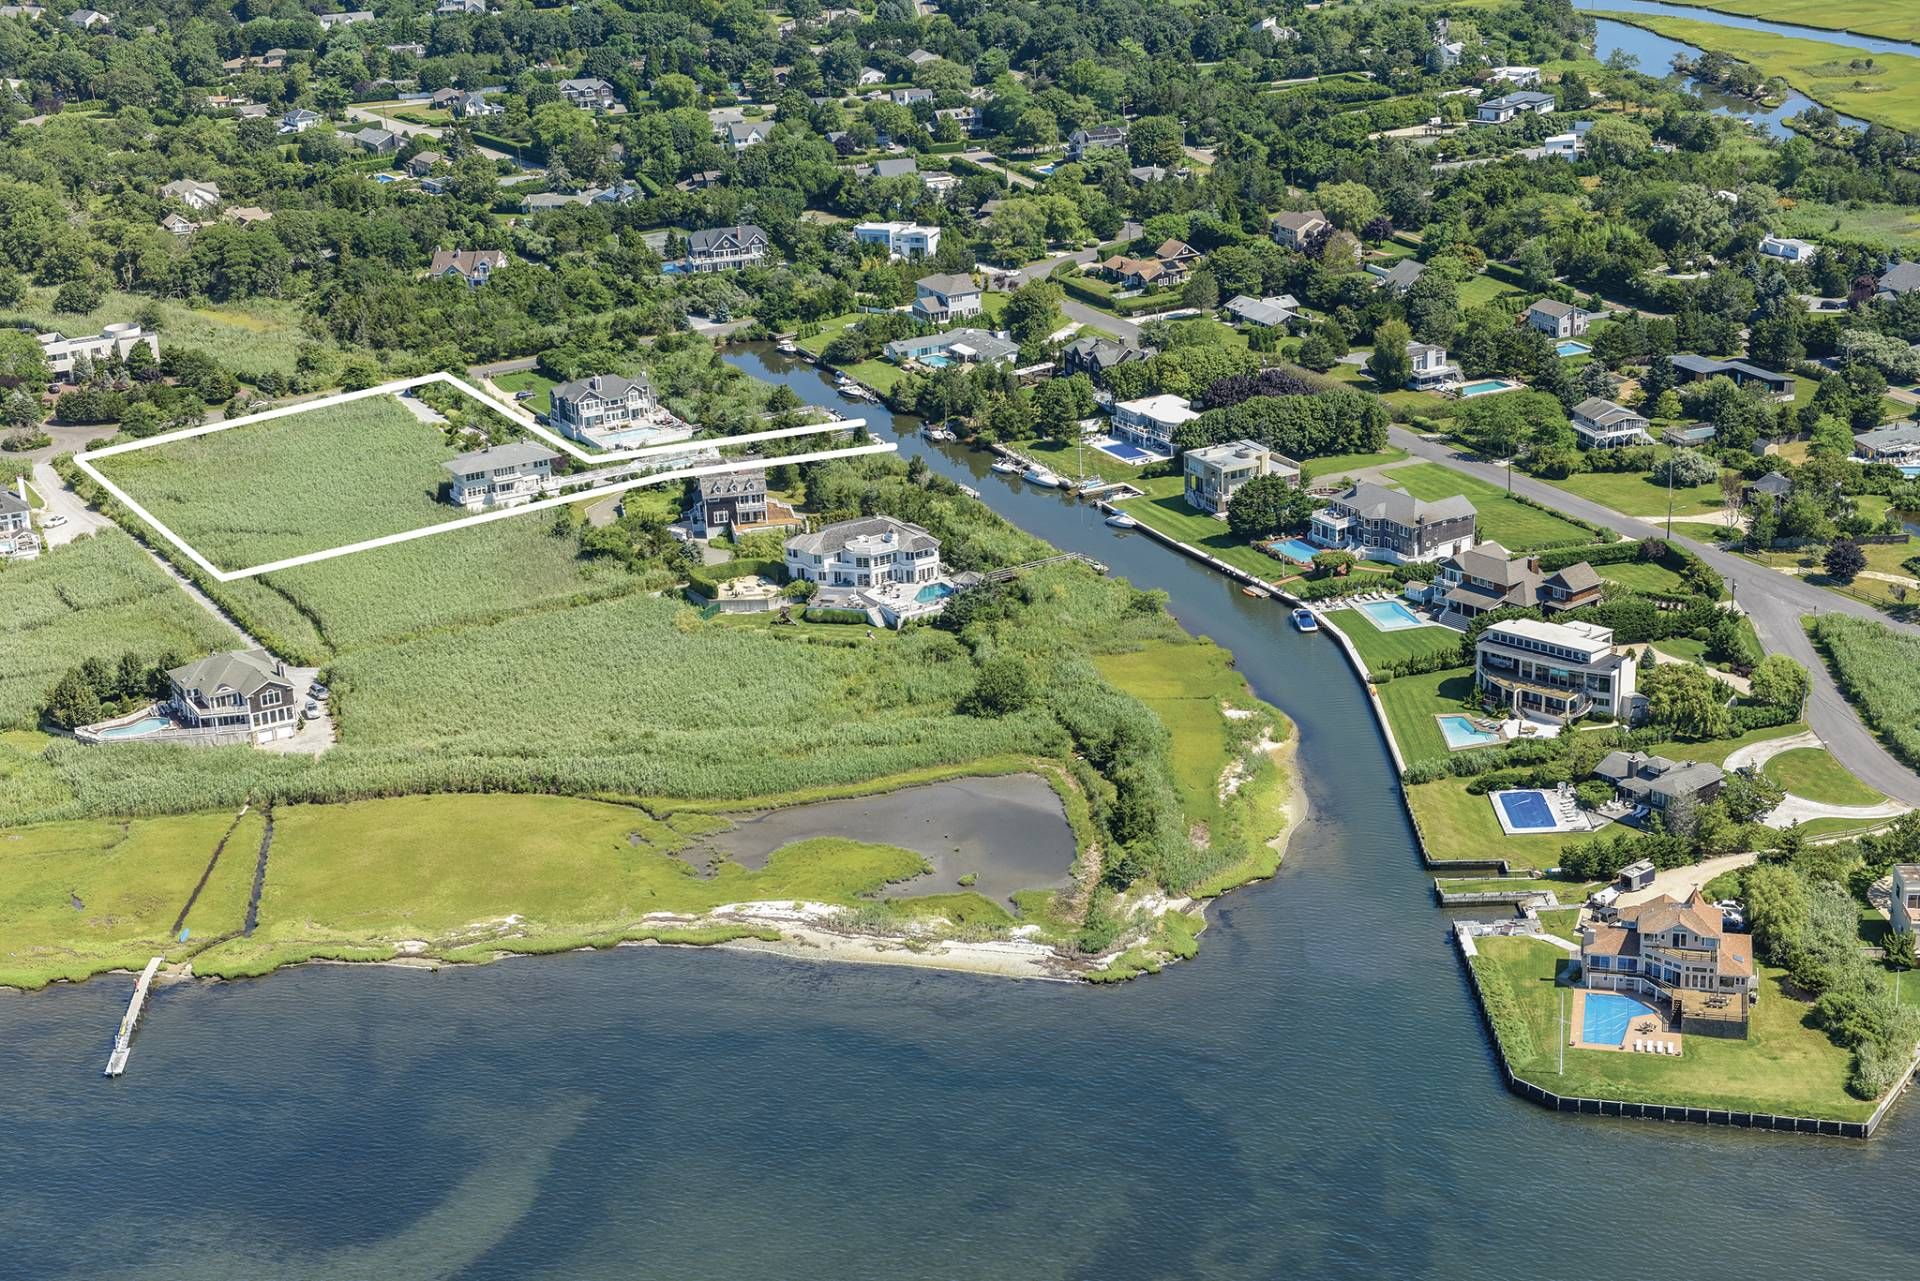 Single Family Home for Sale at Sophisticated Beach Living With Pool, Dock, Water Views 5 Bay Meadow Lane, Westhampton, New York